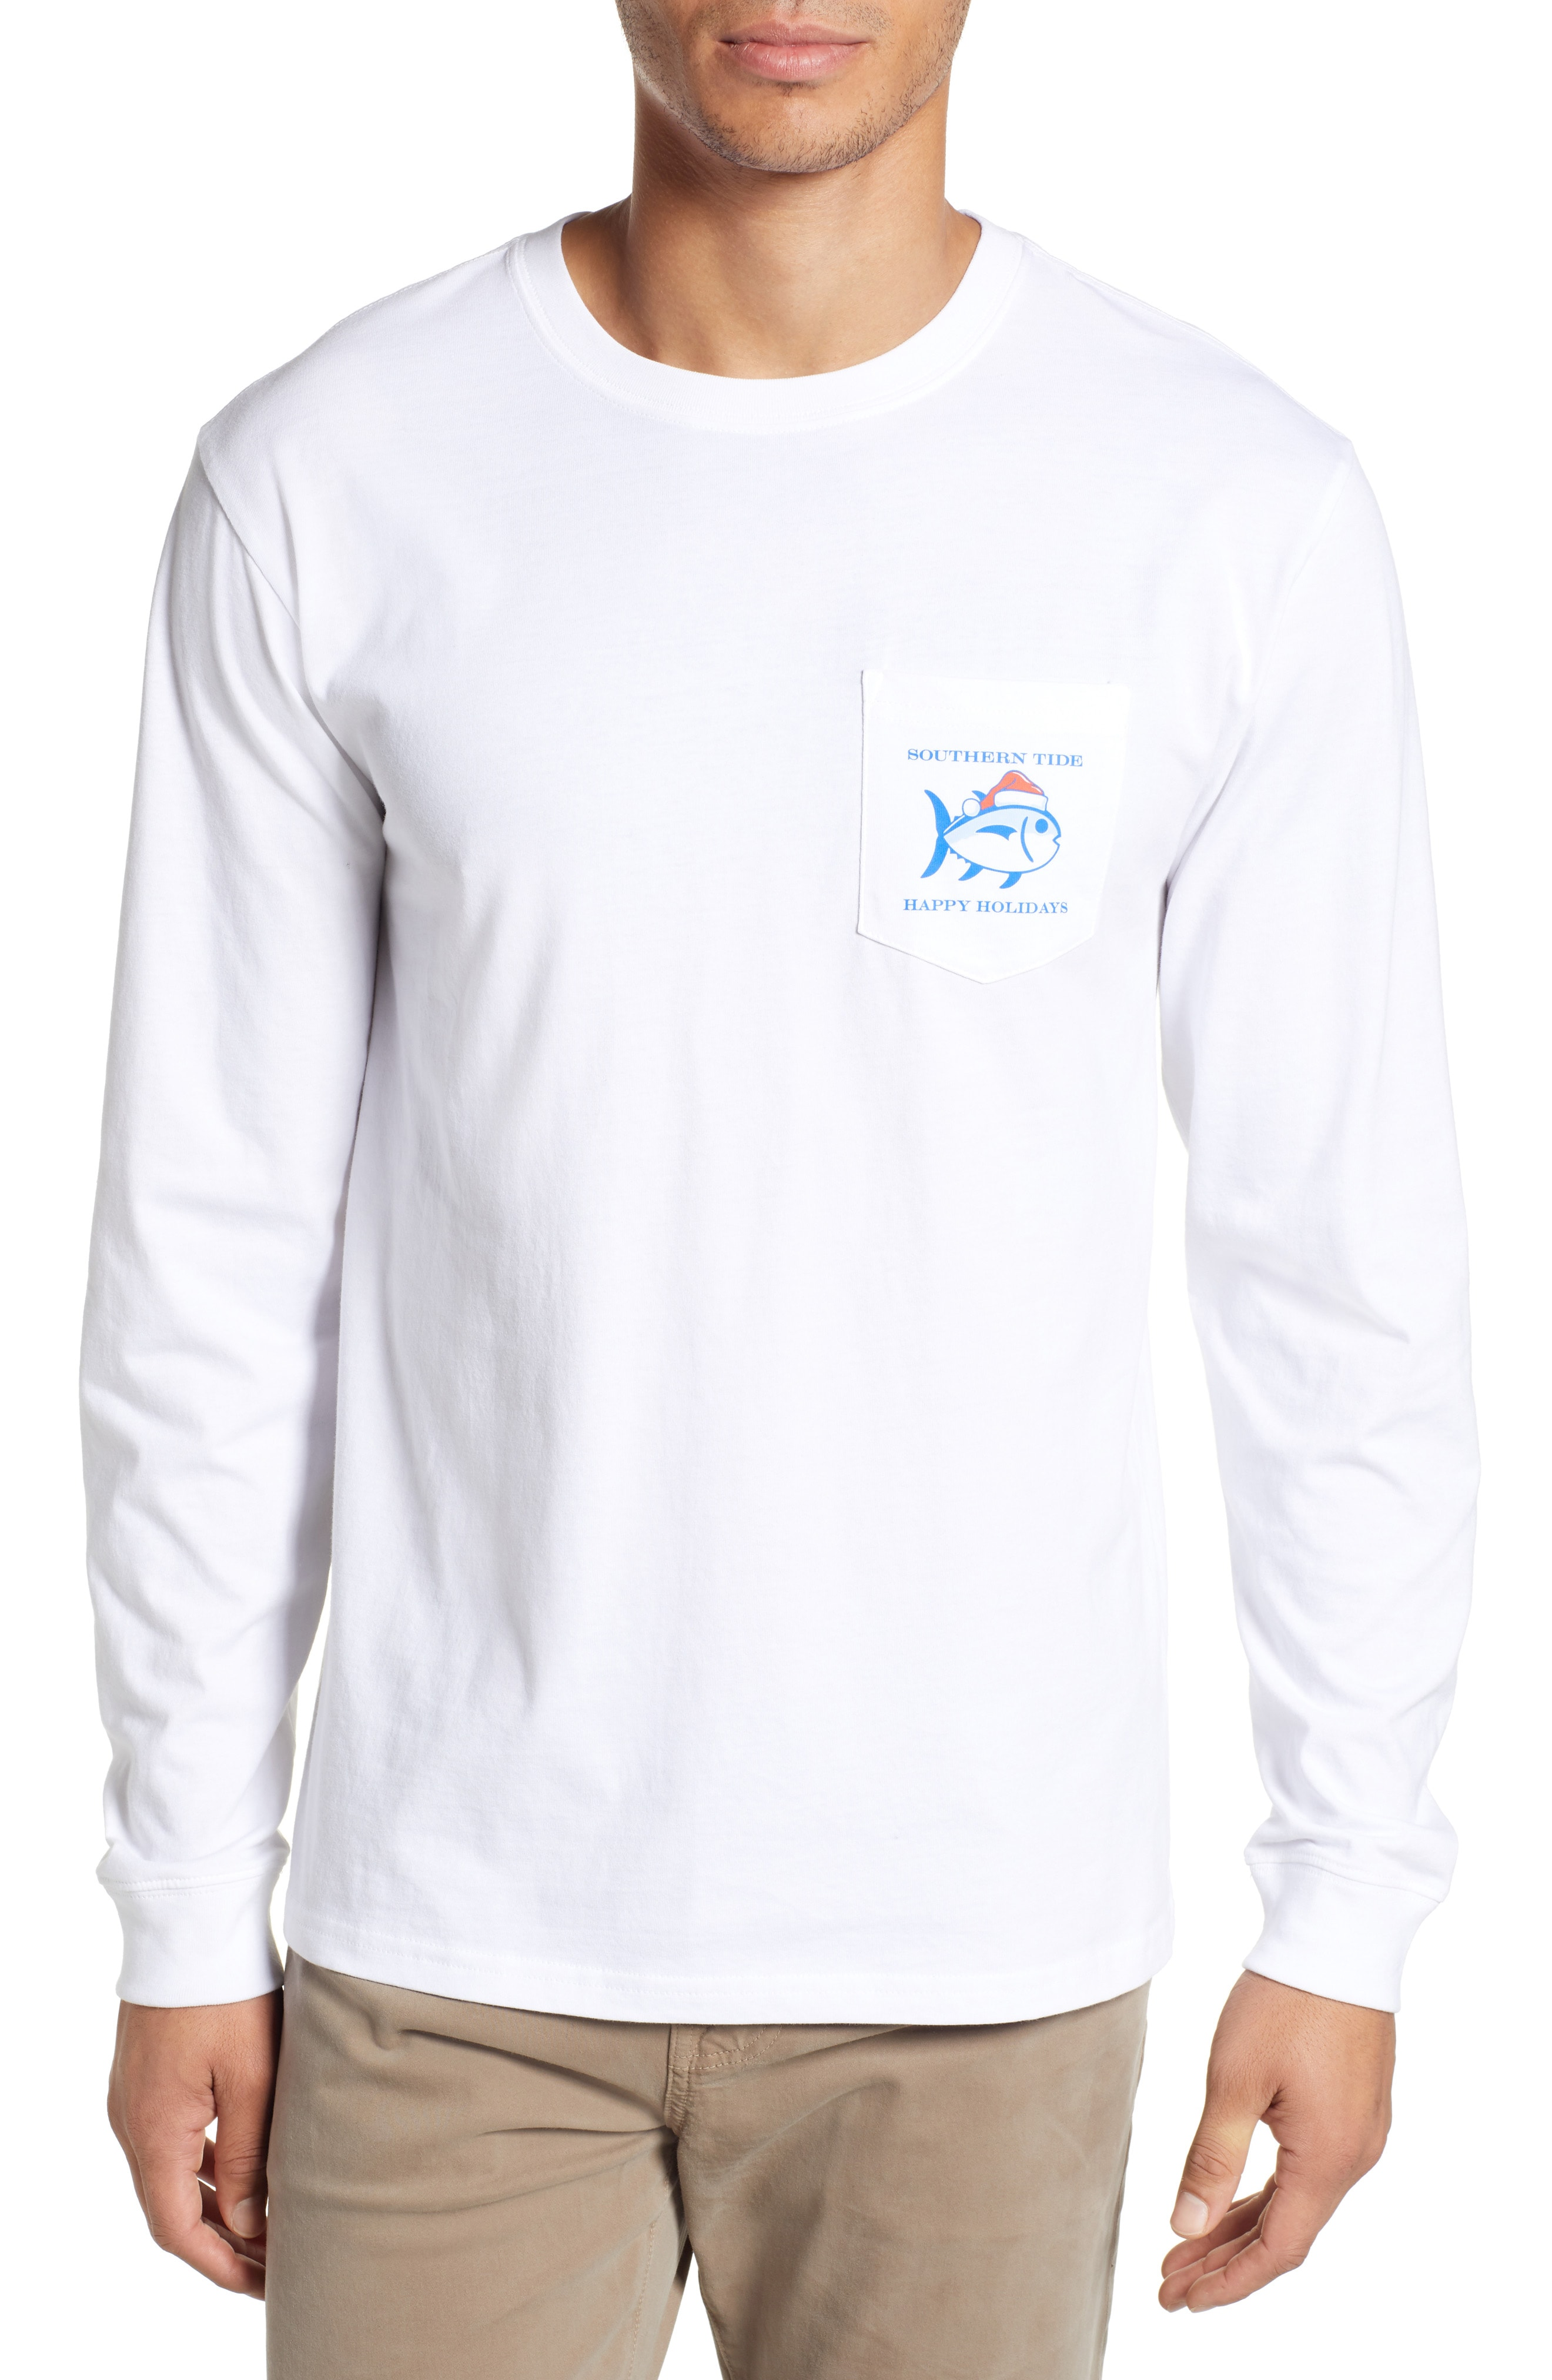 Southern Tide 'Twas the Day After Christmas T-Shirt